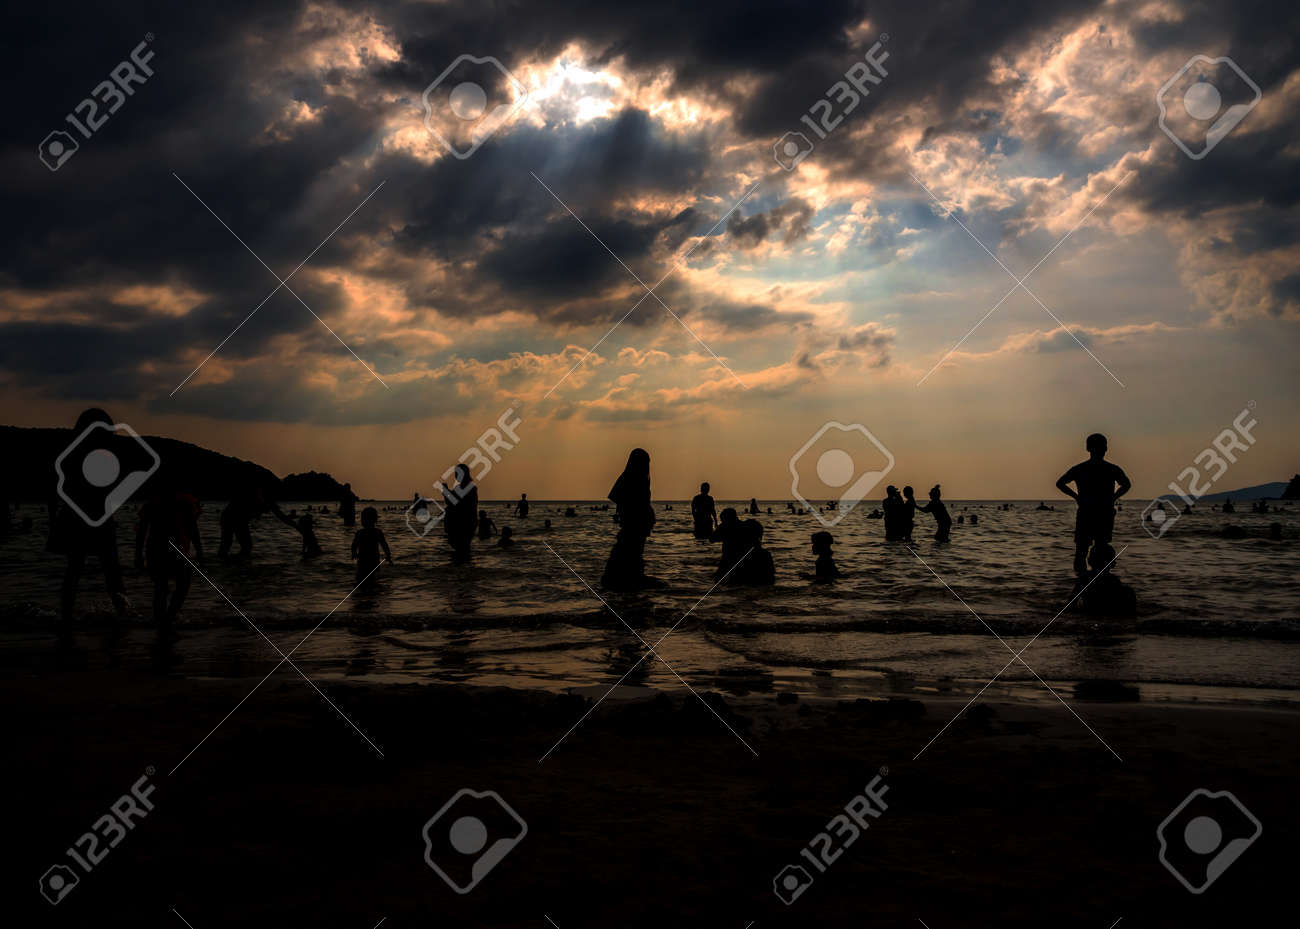 Silhouette in the evening light of people playing in the sea at a public beach - 167263891